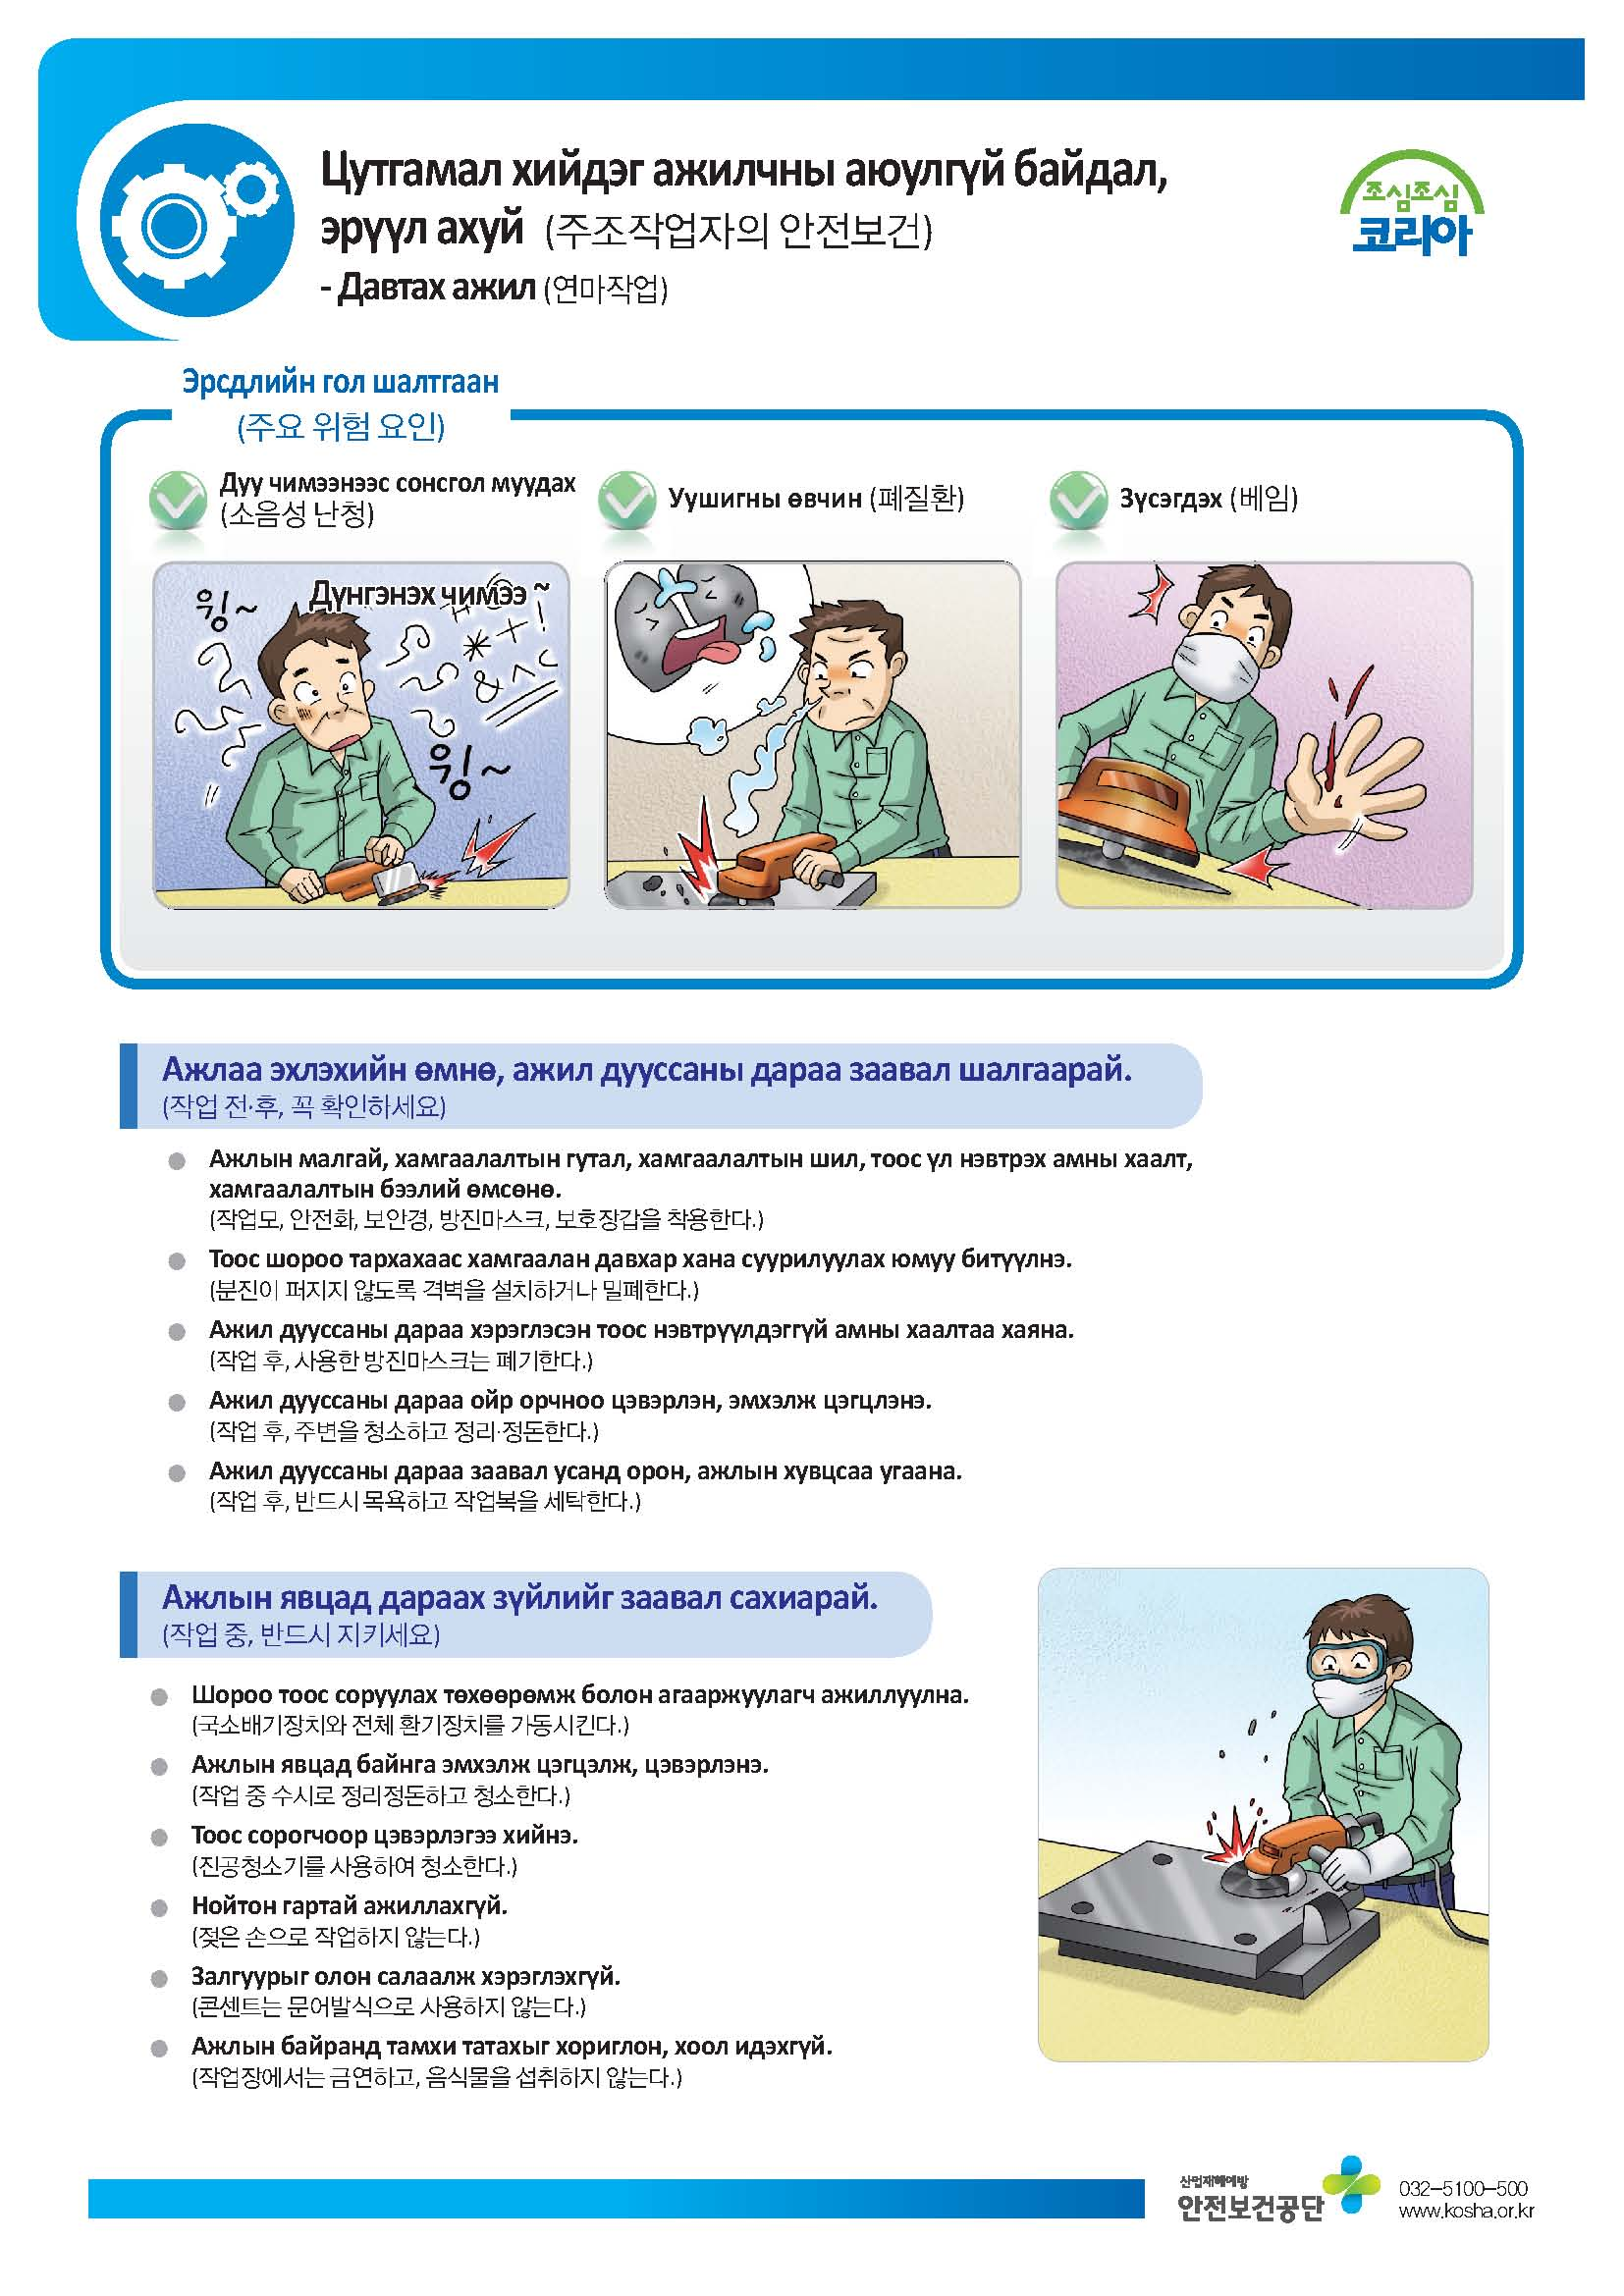 Safety and Healthcare Manual for Foreign Workers-Manufacturing Industry : Polishing 외국인 근로자 안전보건 매뉴얼 - 제조업 : 연마작업